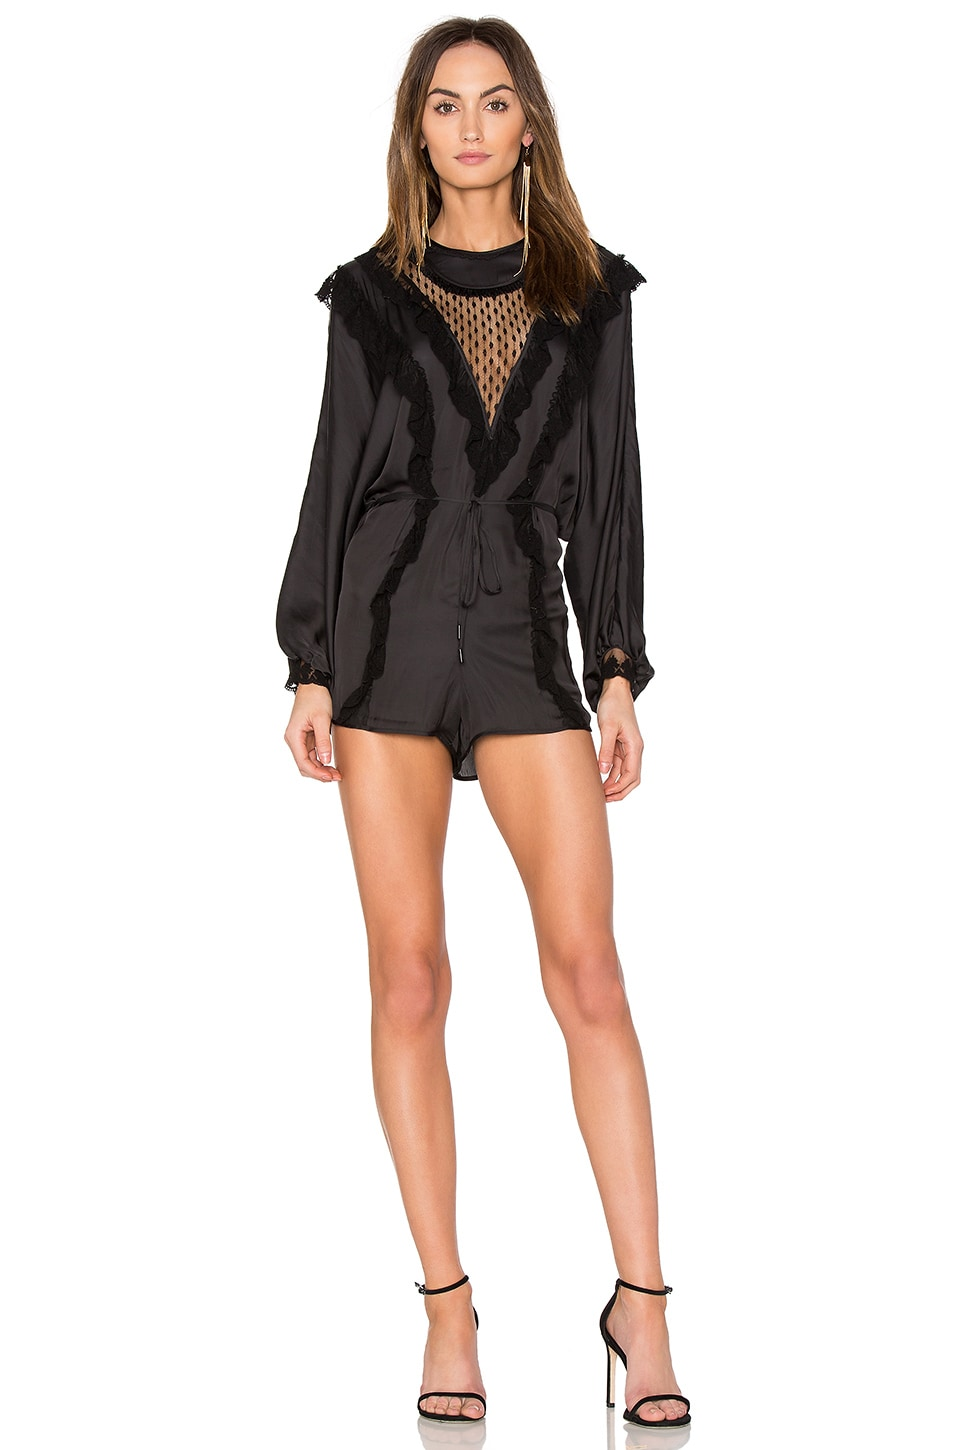 Alice McCall Love Story Romper in Black